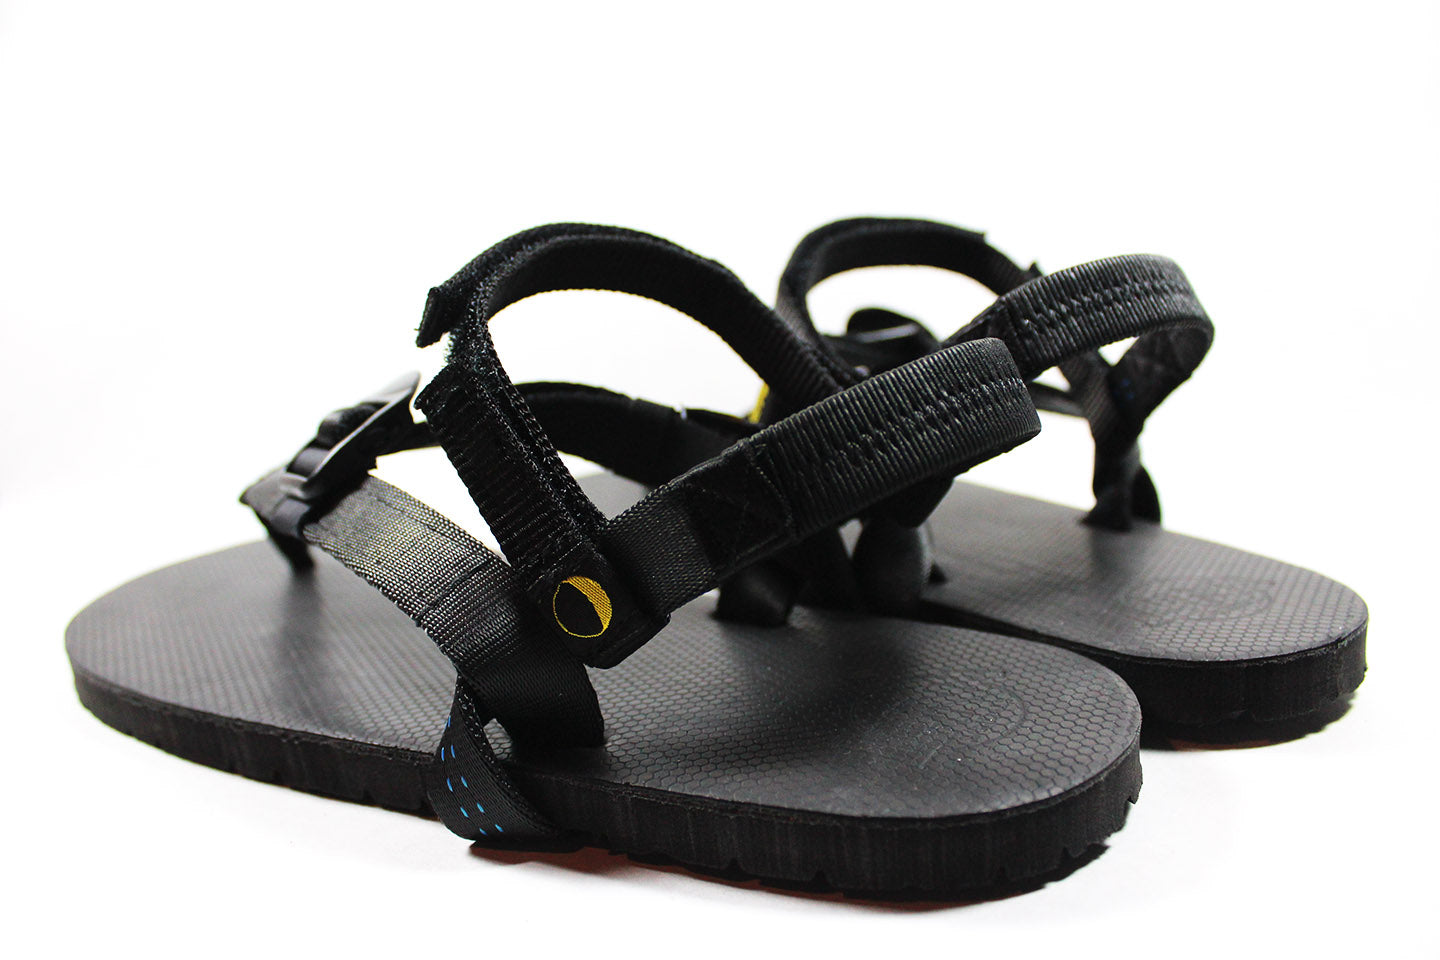 LUNA Sandals - Lifestyle Laces